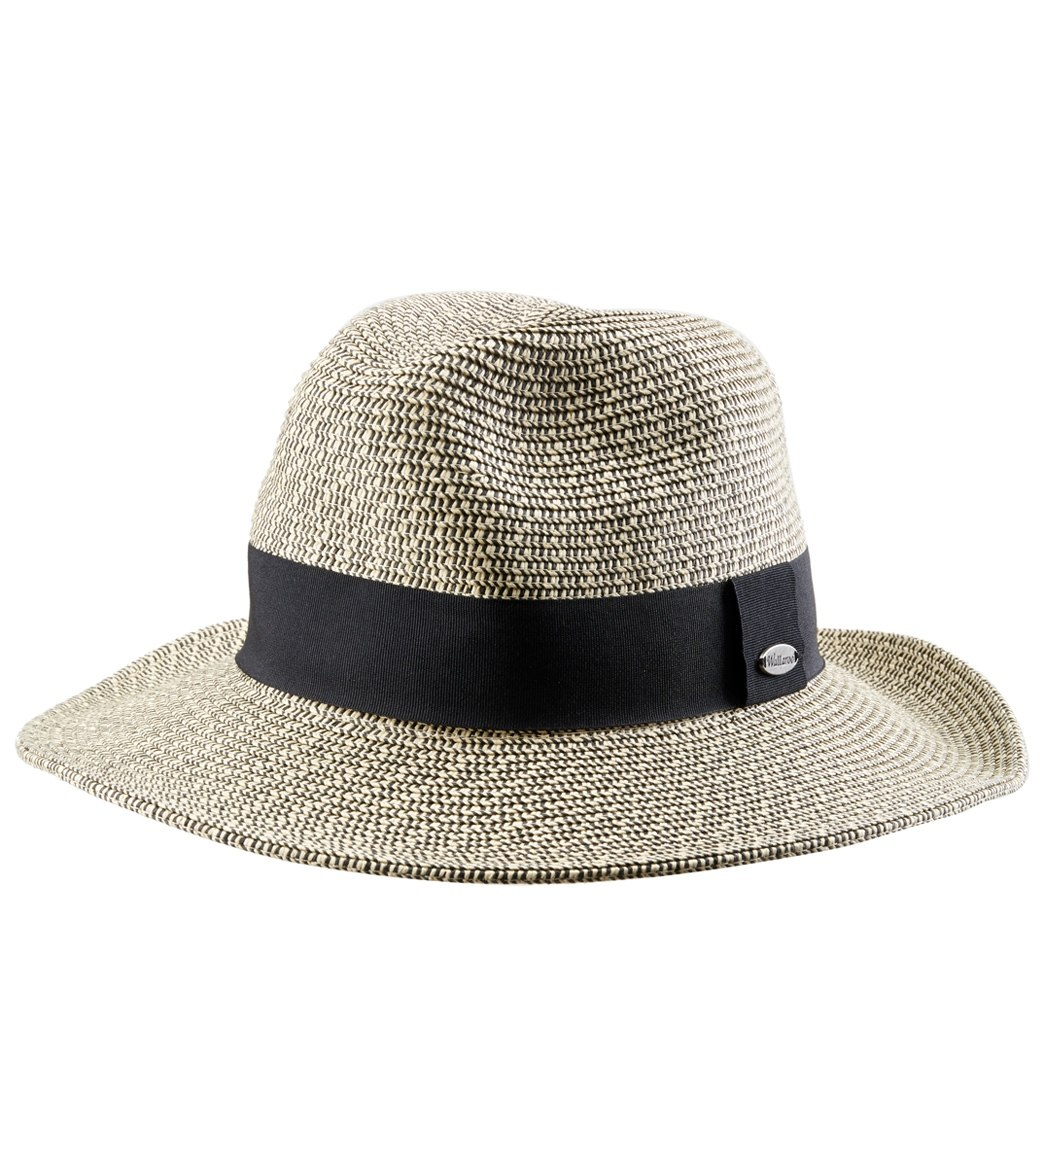 Wallaroo Women s Josie Fedora Hat at SwimOutlet.com ca1d6b433d9